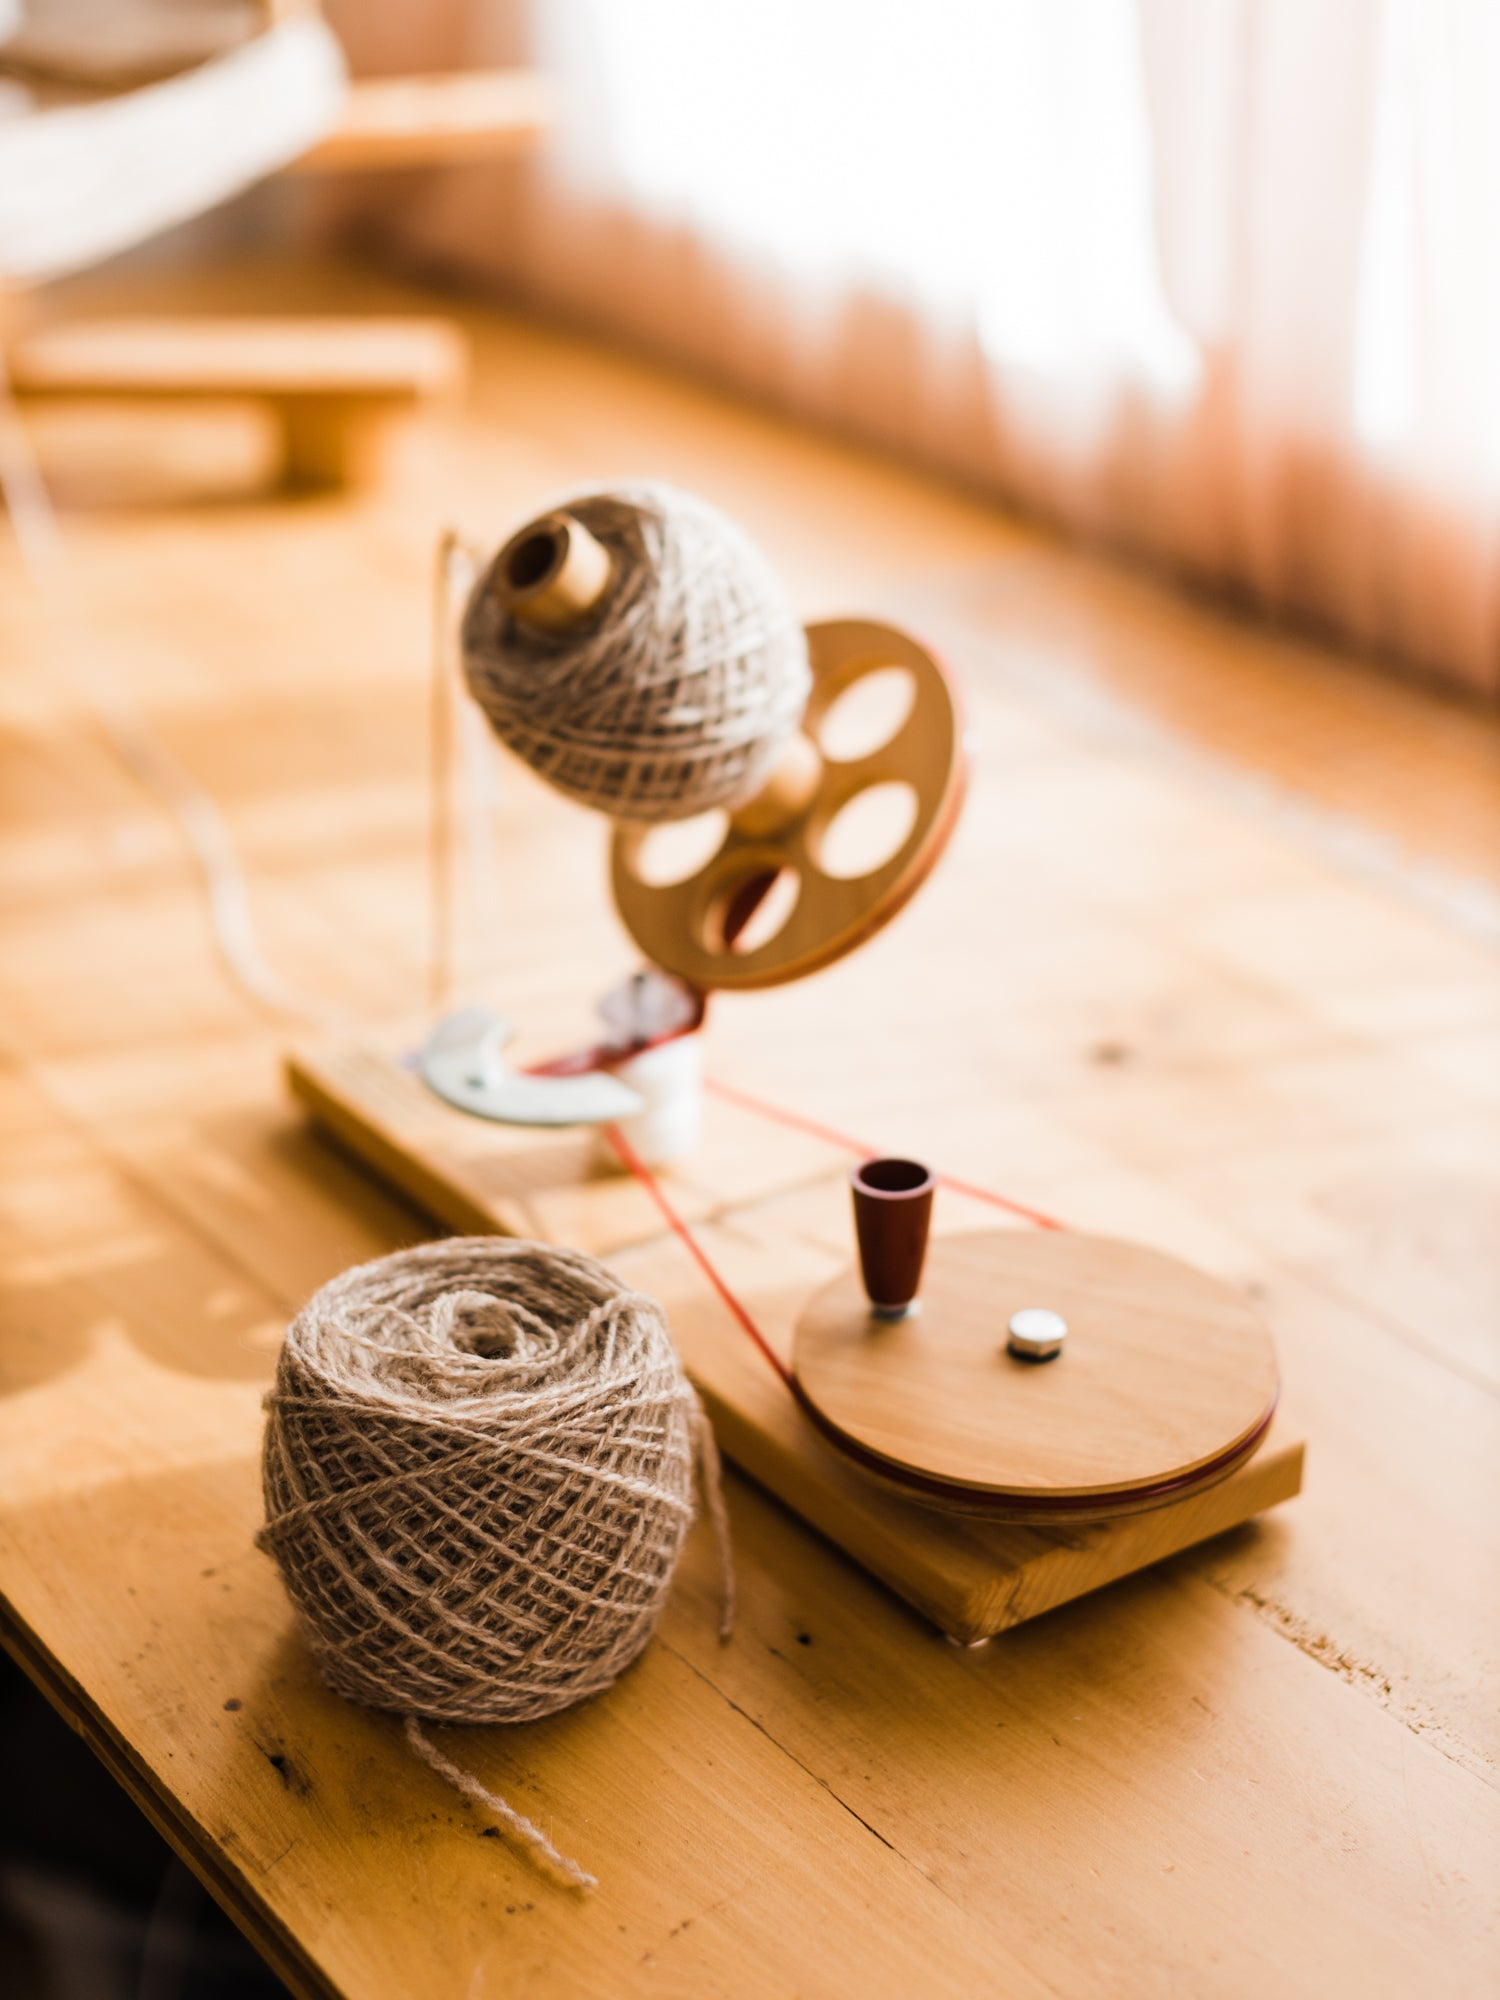 This Darling Home Handspun yarn wound on a ball winder